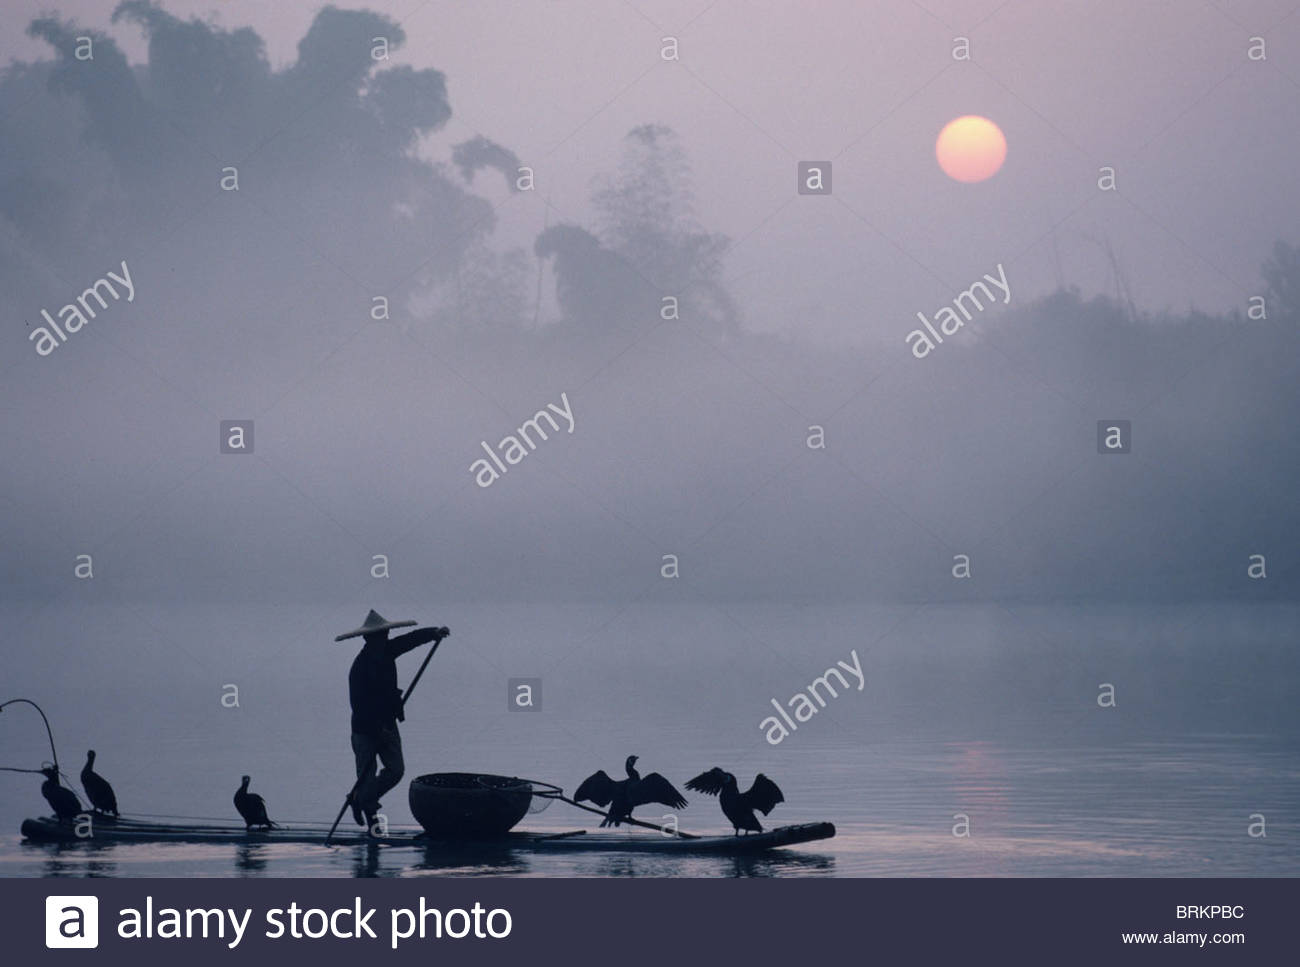 A fisher uses Cormorants to capture fish from the Li River at sunrise. - Stock Image